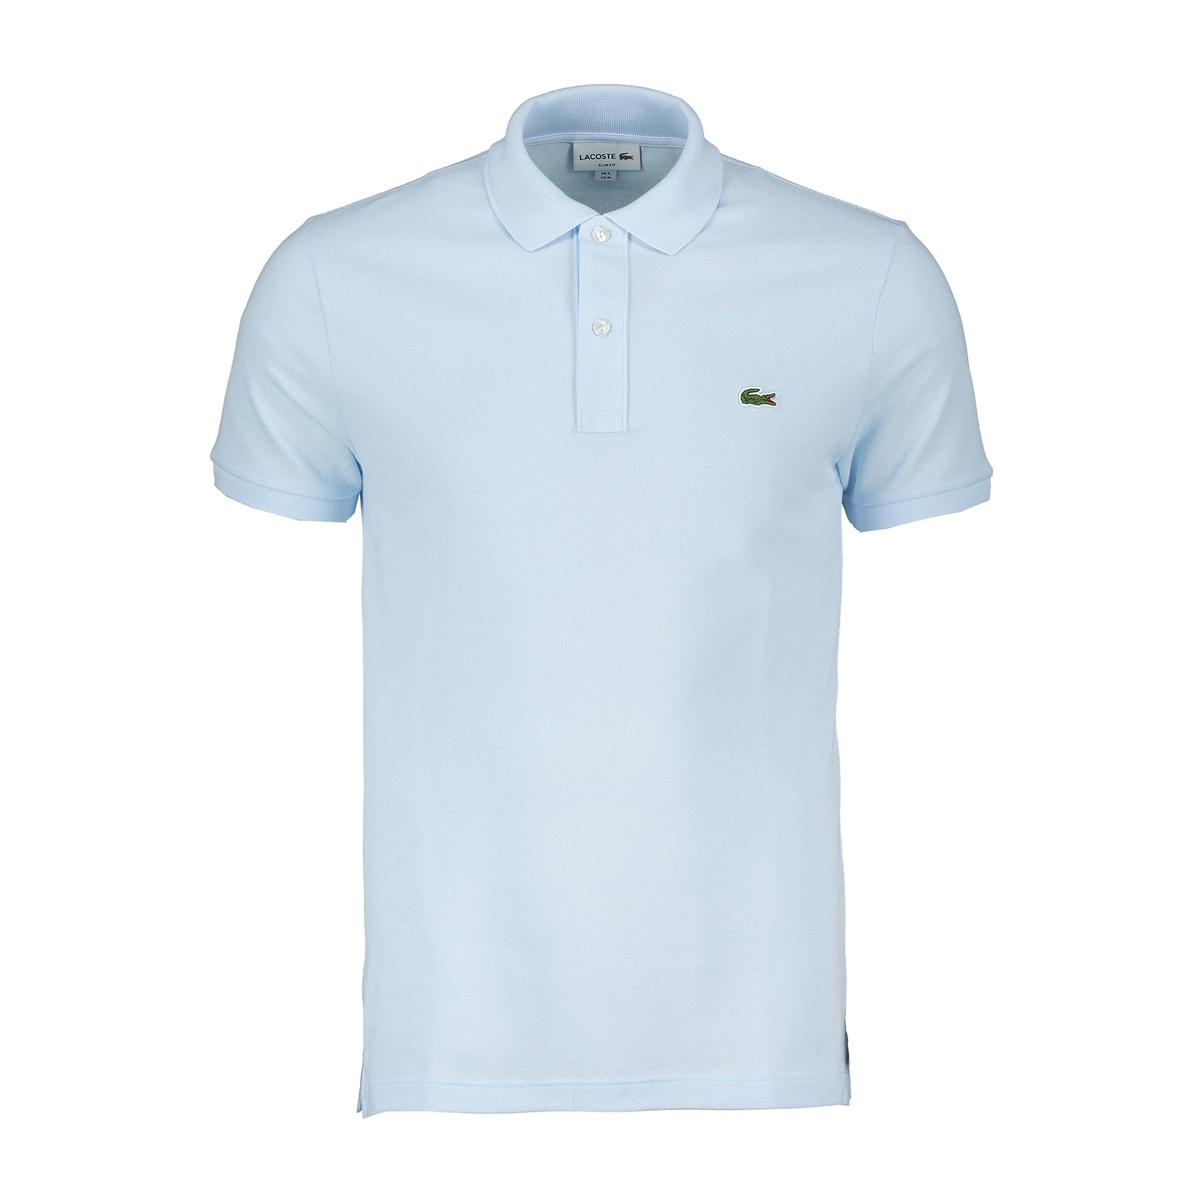 Polo slim ph4012 azzurro baby